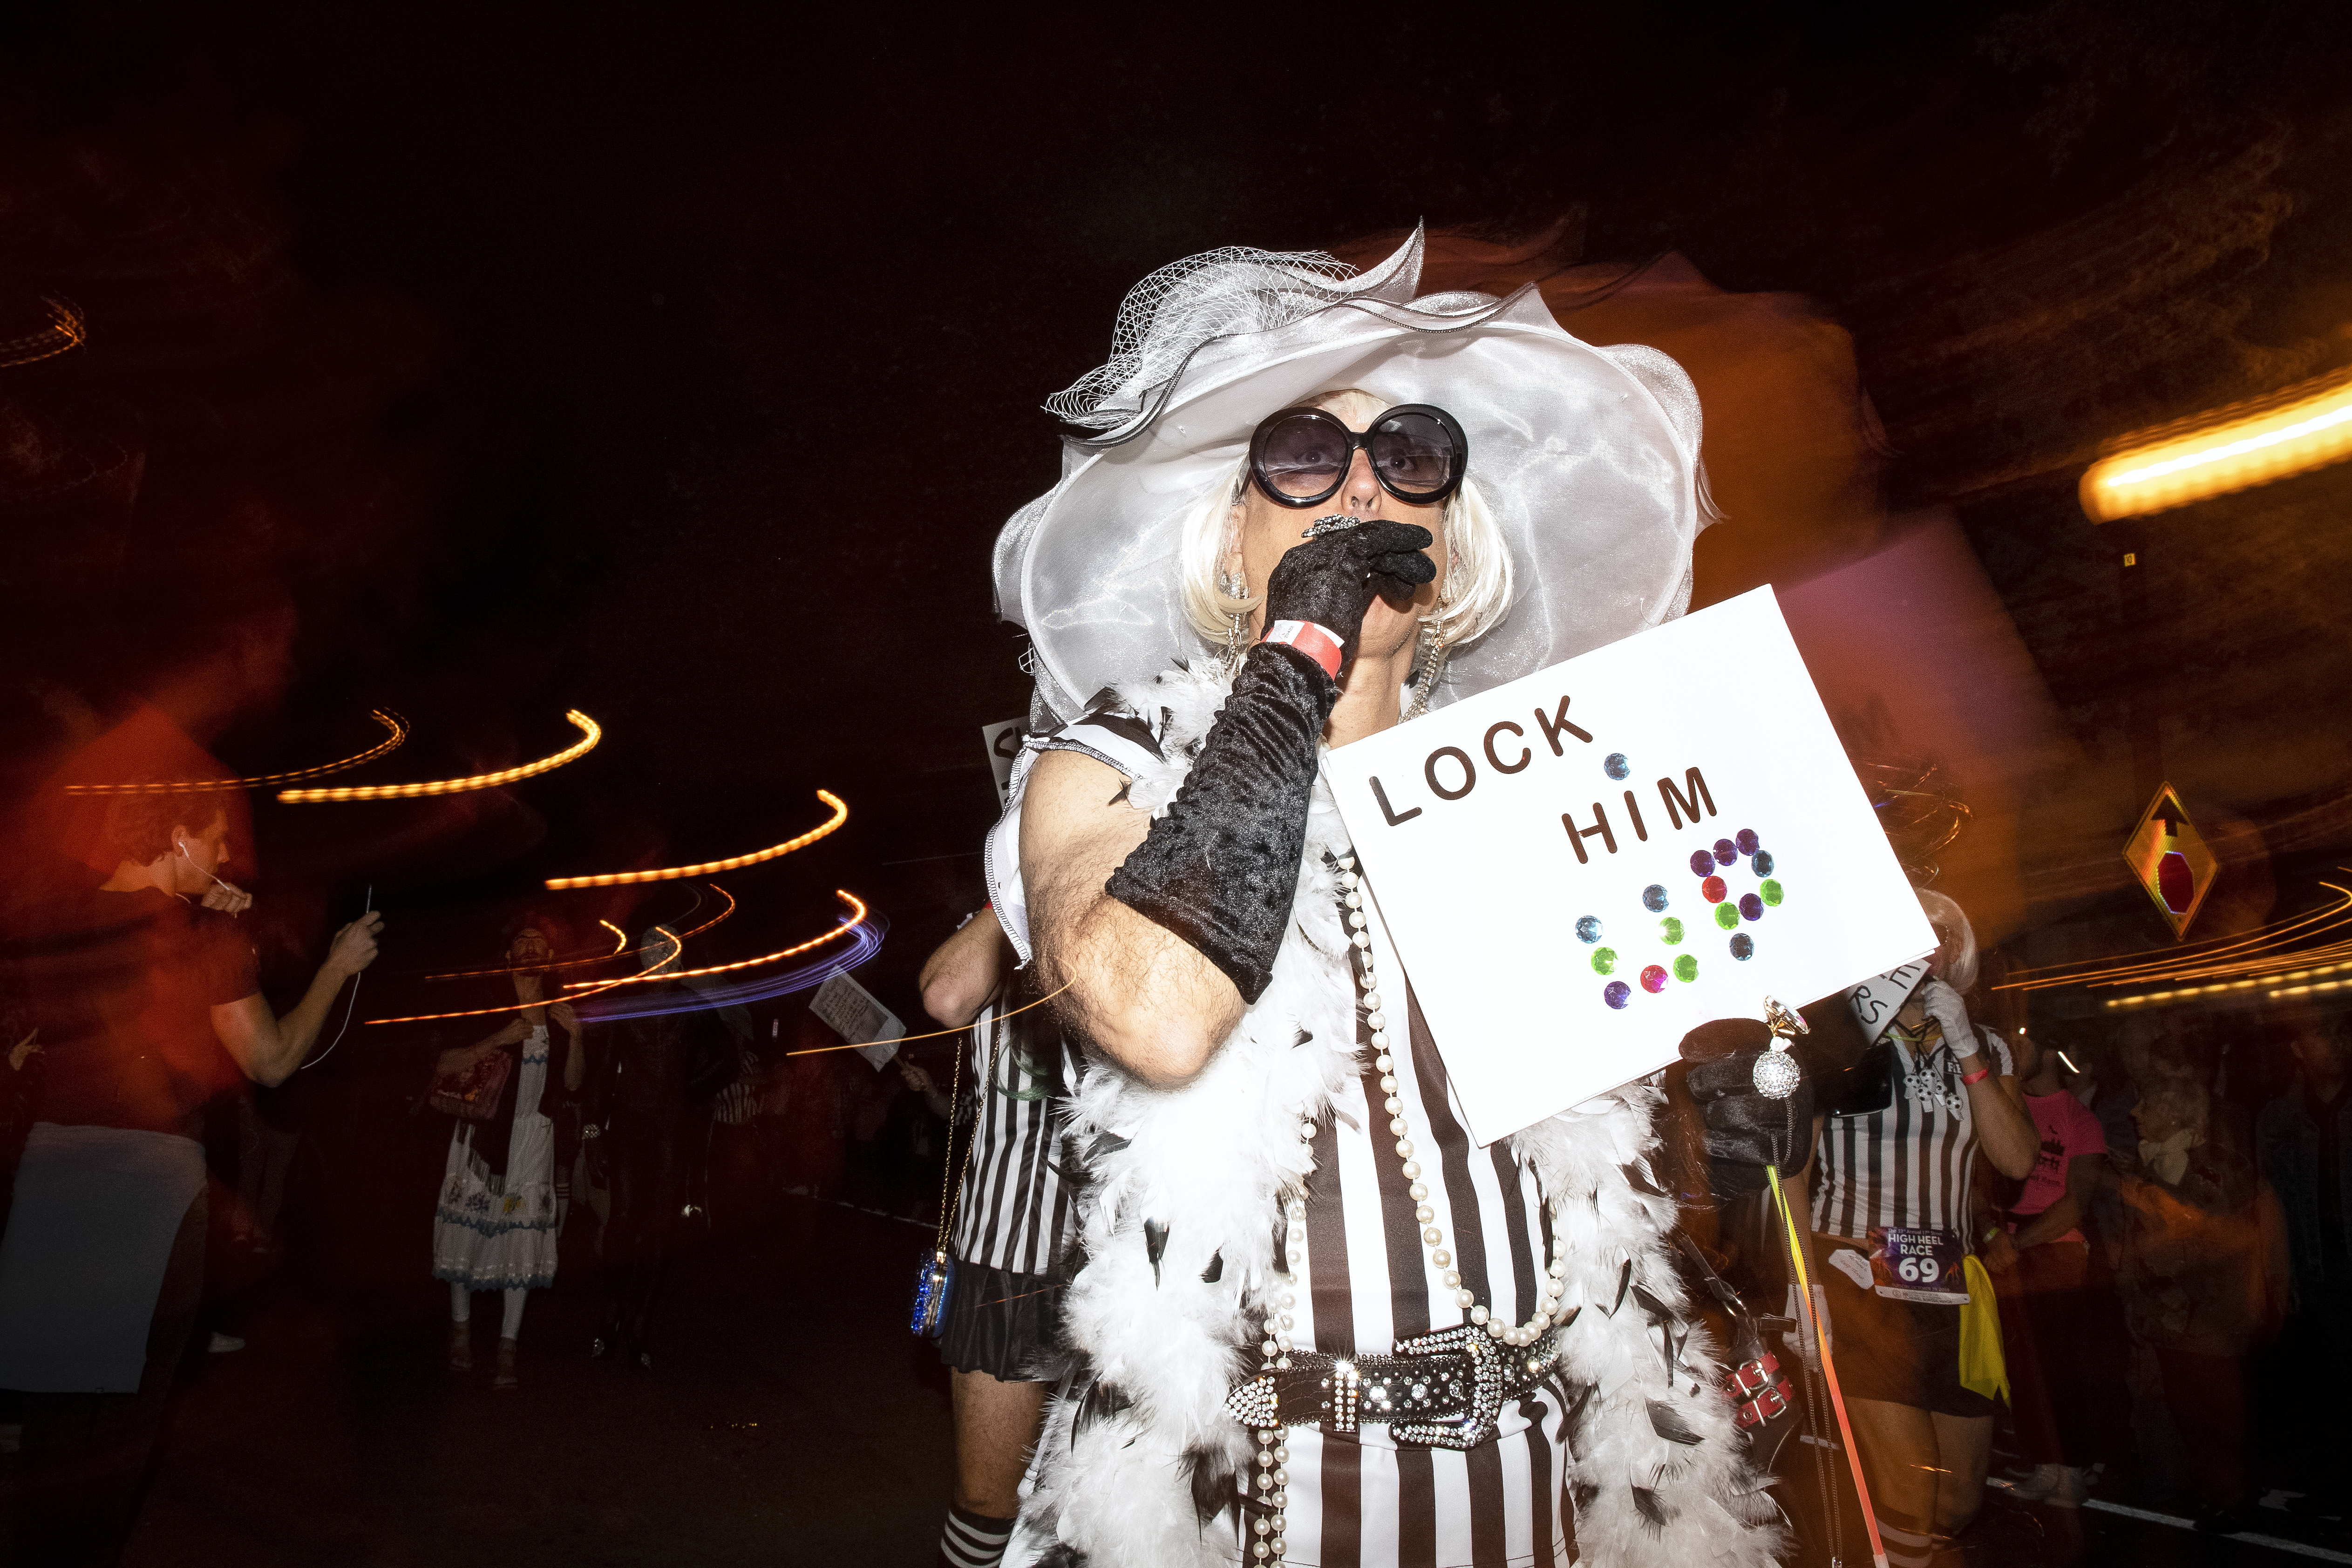 UNITED STATES - OCTOBER 29: A man dressed as a whistleblower participates in the costume parade before the start of the 33rd Annual 17th Street High Heel Race on Tuesday Oct. 29, 2019. (Photo by Caroline Brehman/CQ Roll Call)